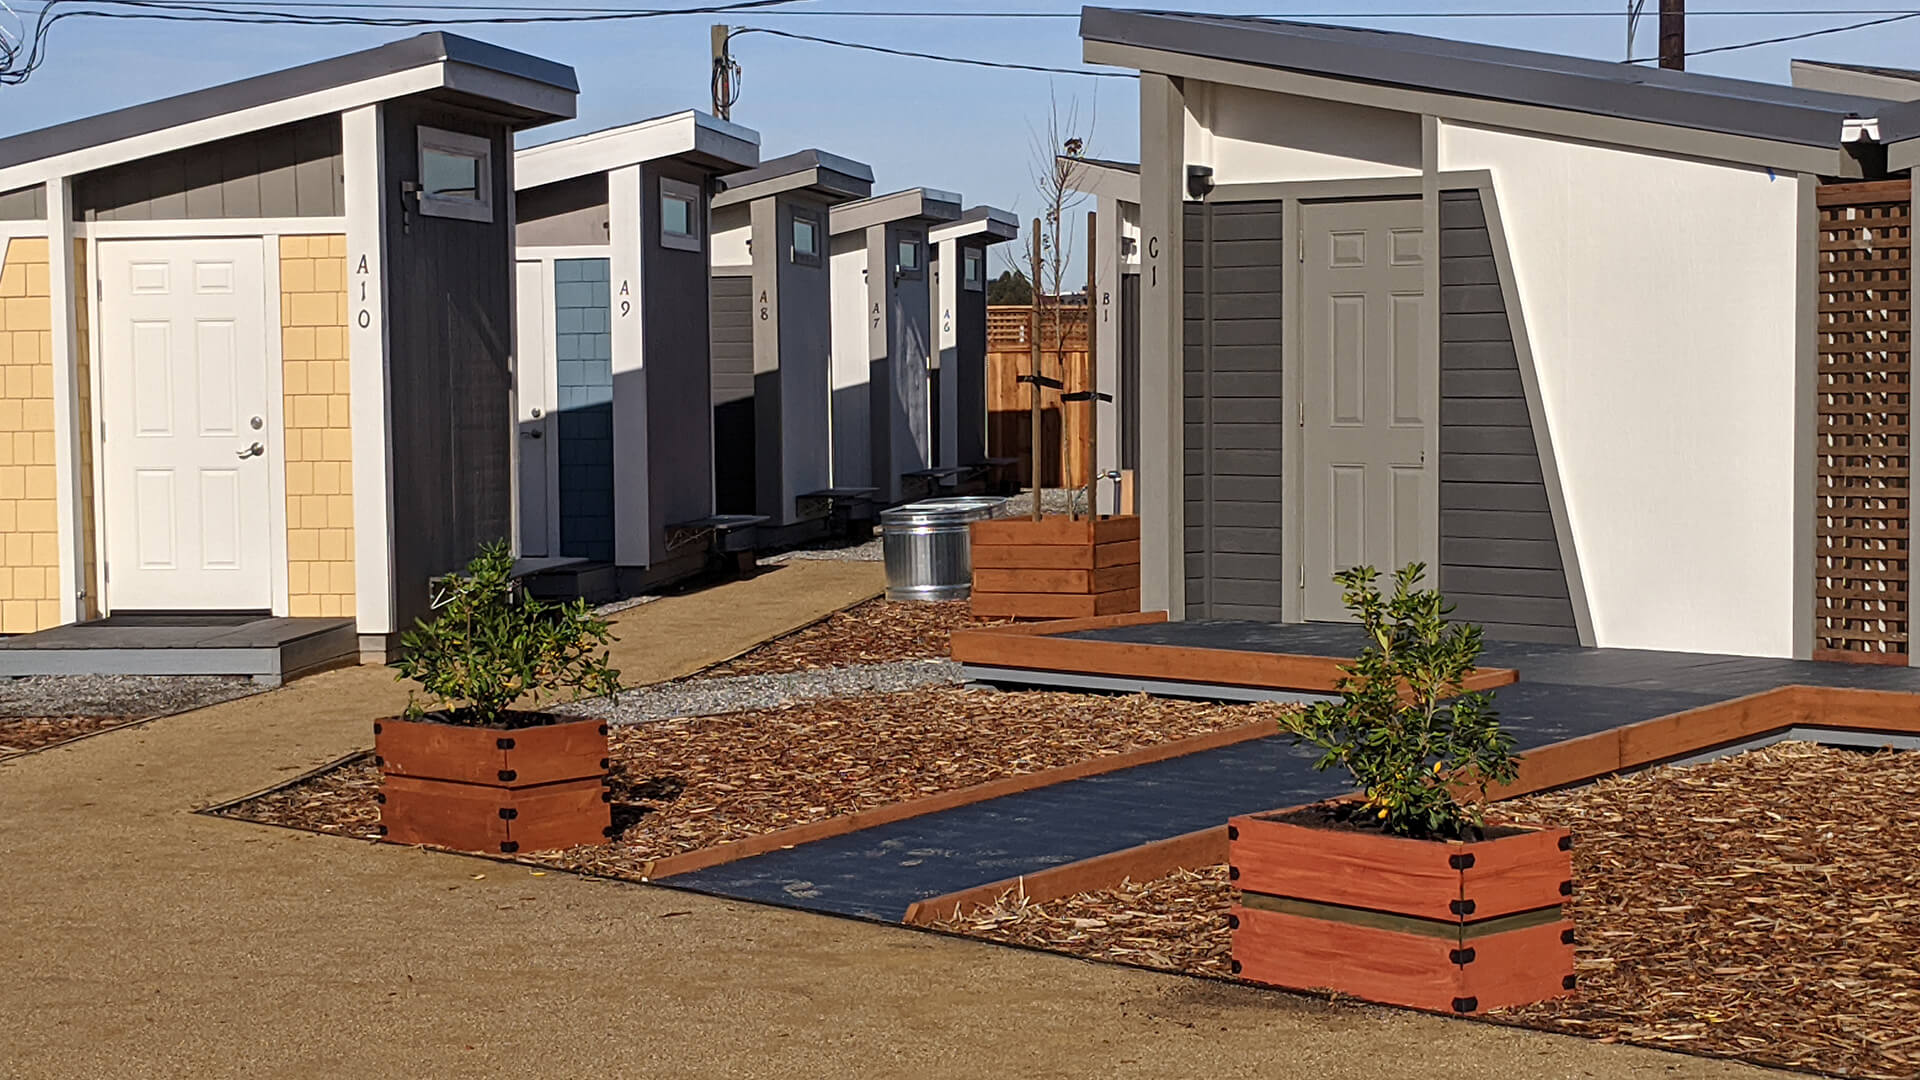 Berryessa Tiny Home village in San Jose